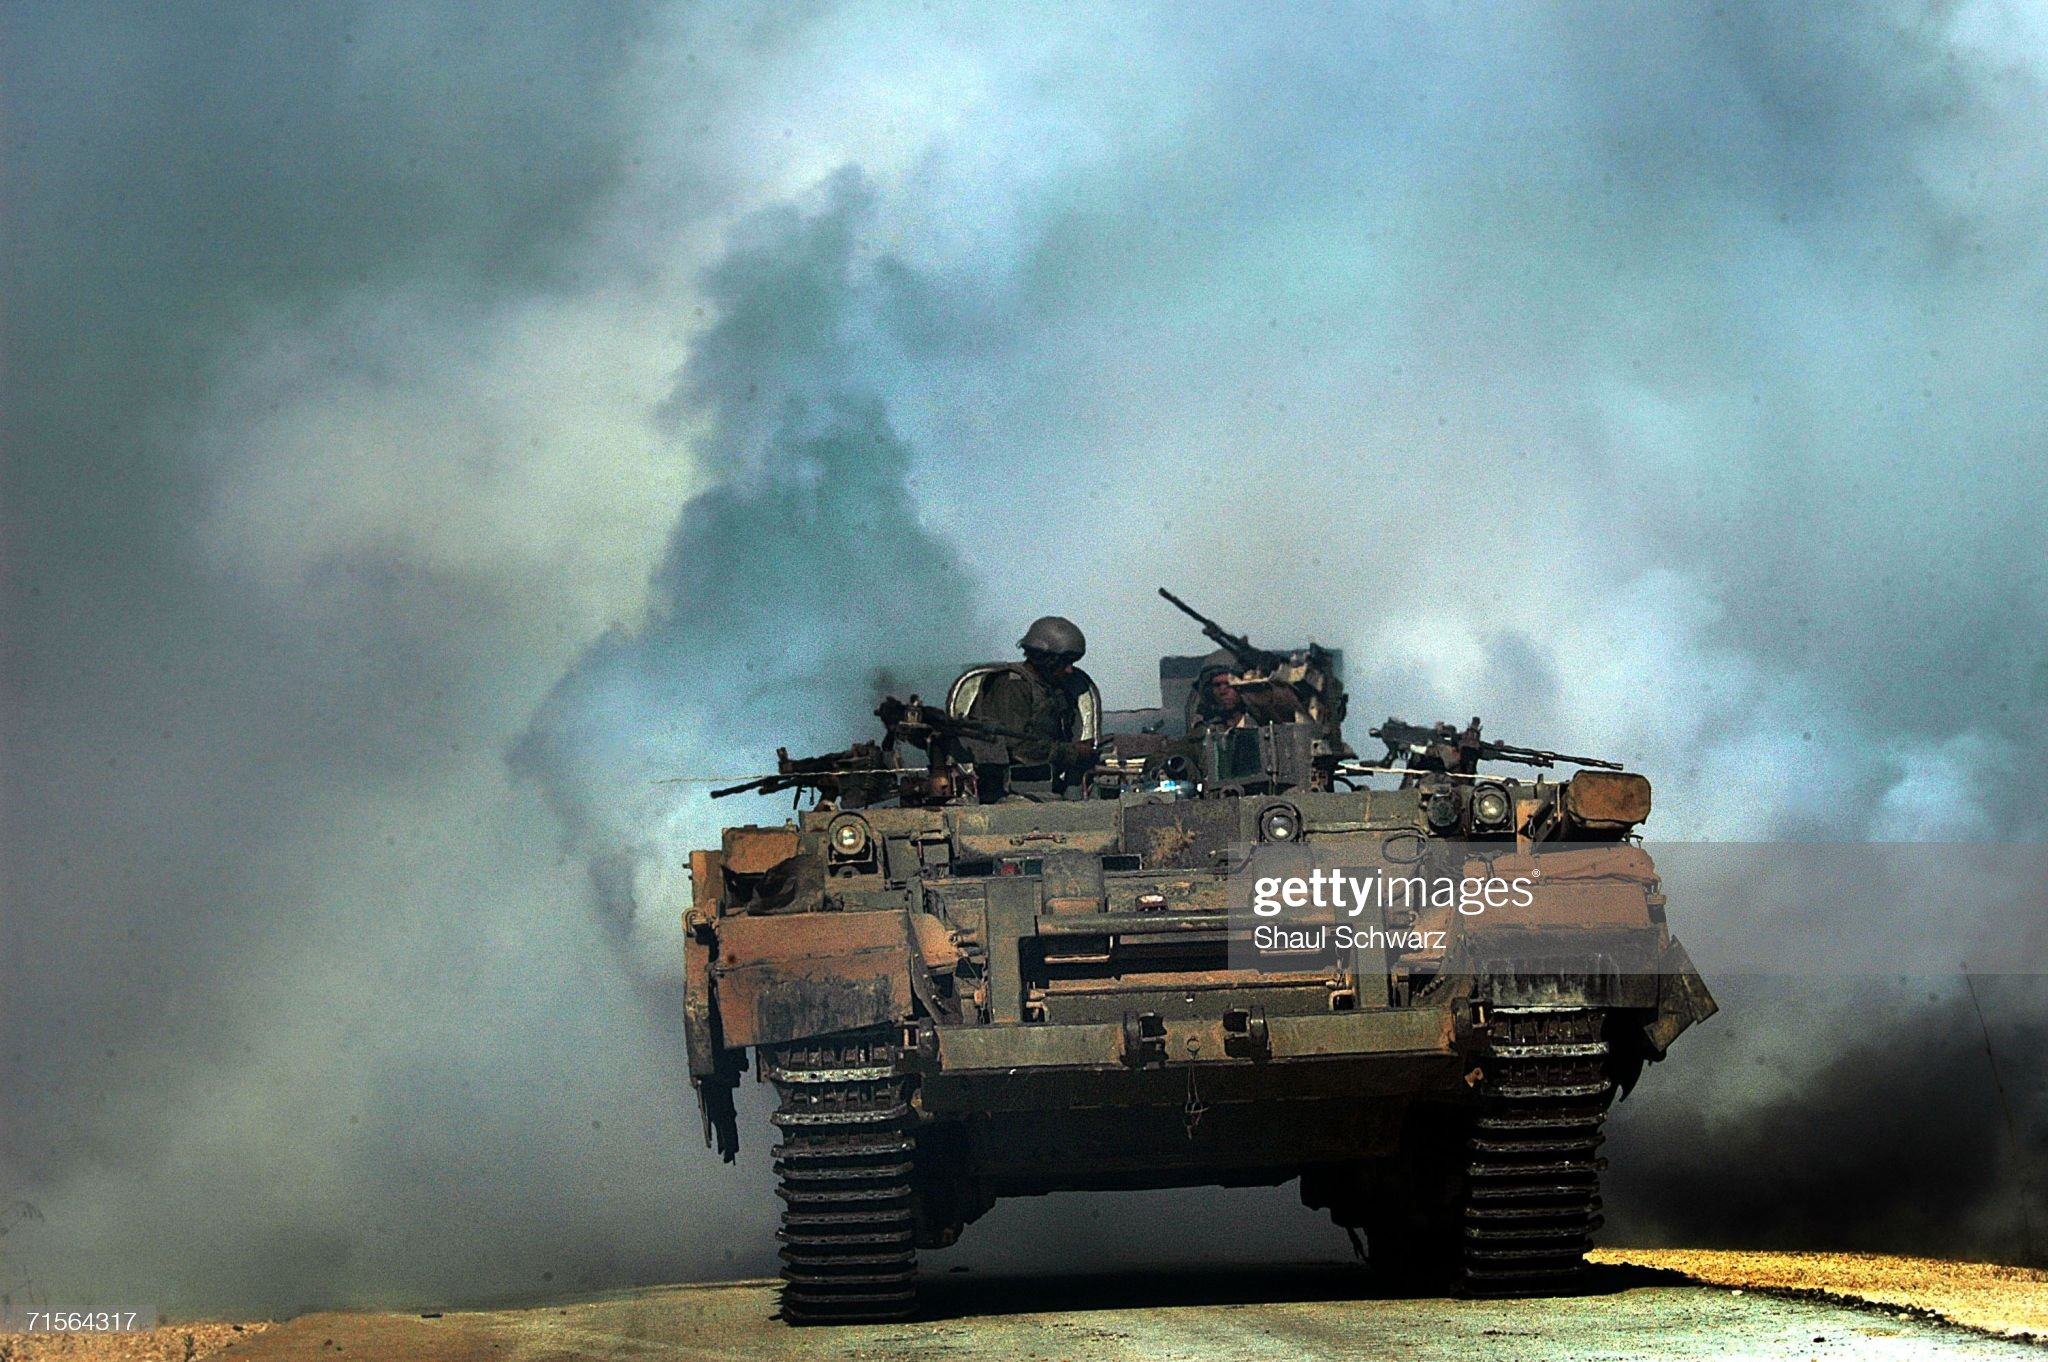 https://media.gettyimages.com/photos/an-israeli-tank-uses-smoke-grenades-to-protect-itself-from-anti-tank-picture-id71564317?s=2048x2048